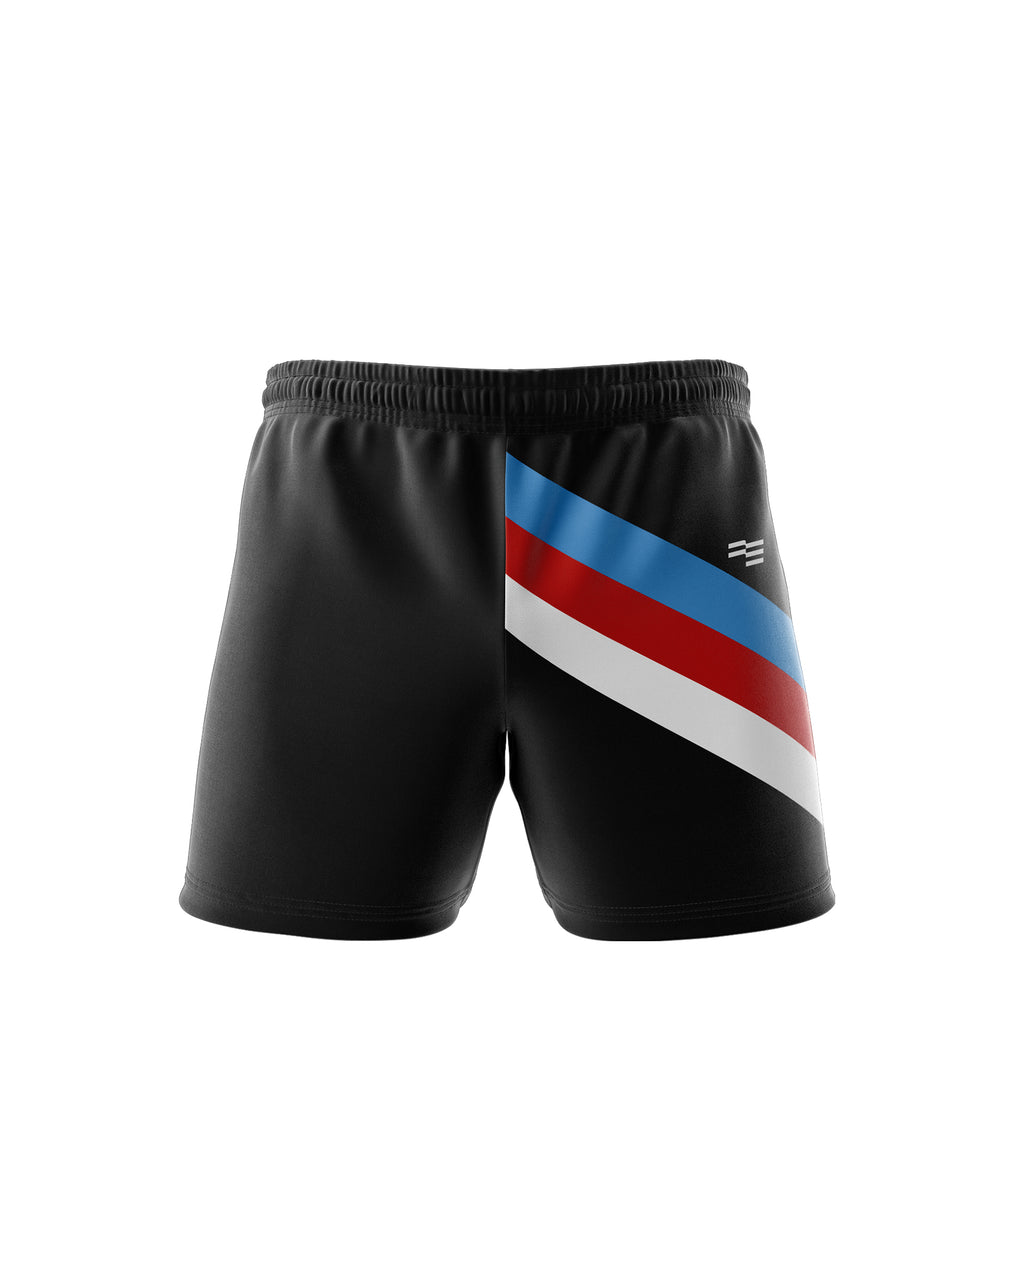 Commodores Rugby Shorts - Mens